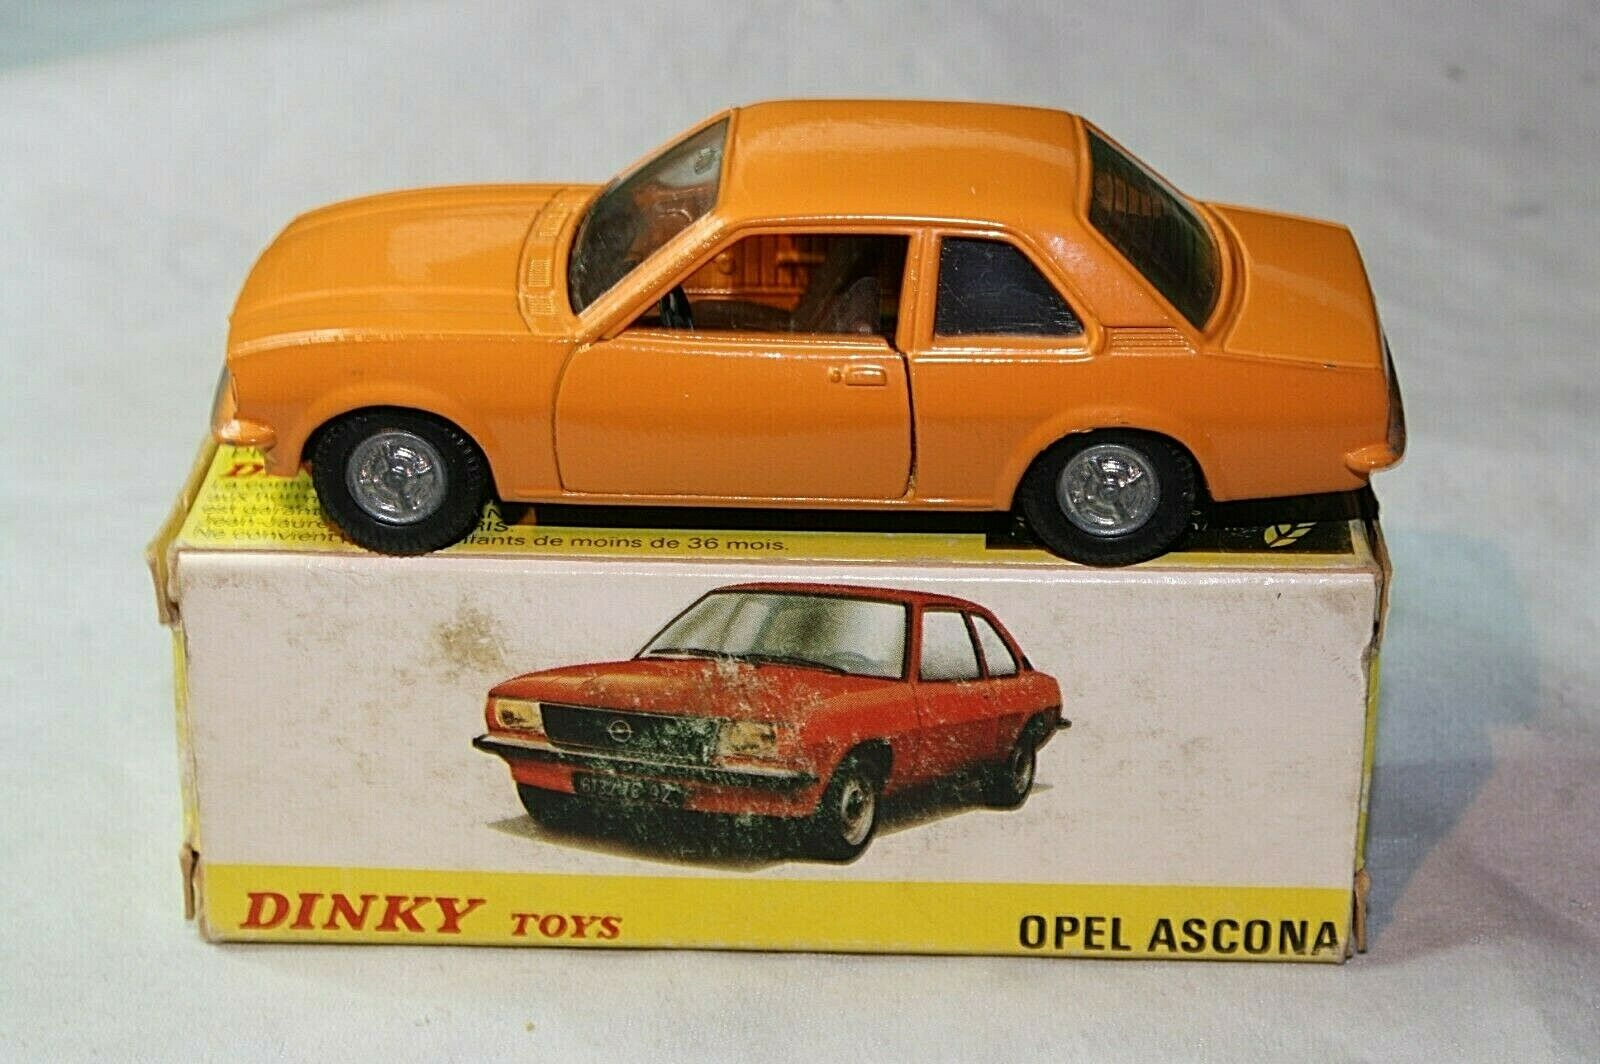 Dinky France 1543 Opel, Mint Condition in Good Original Box